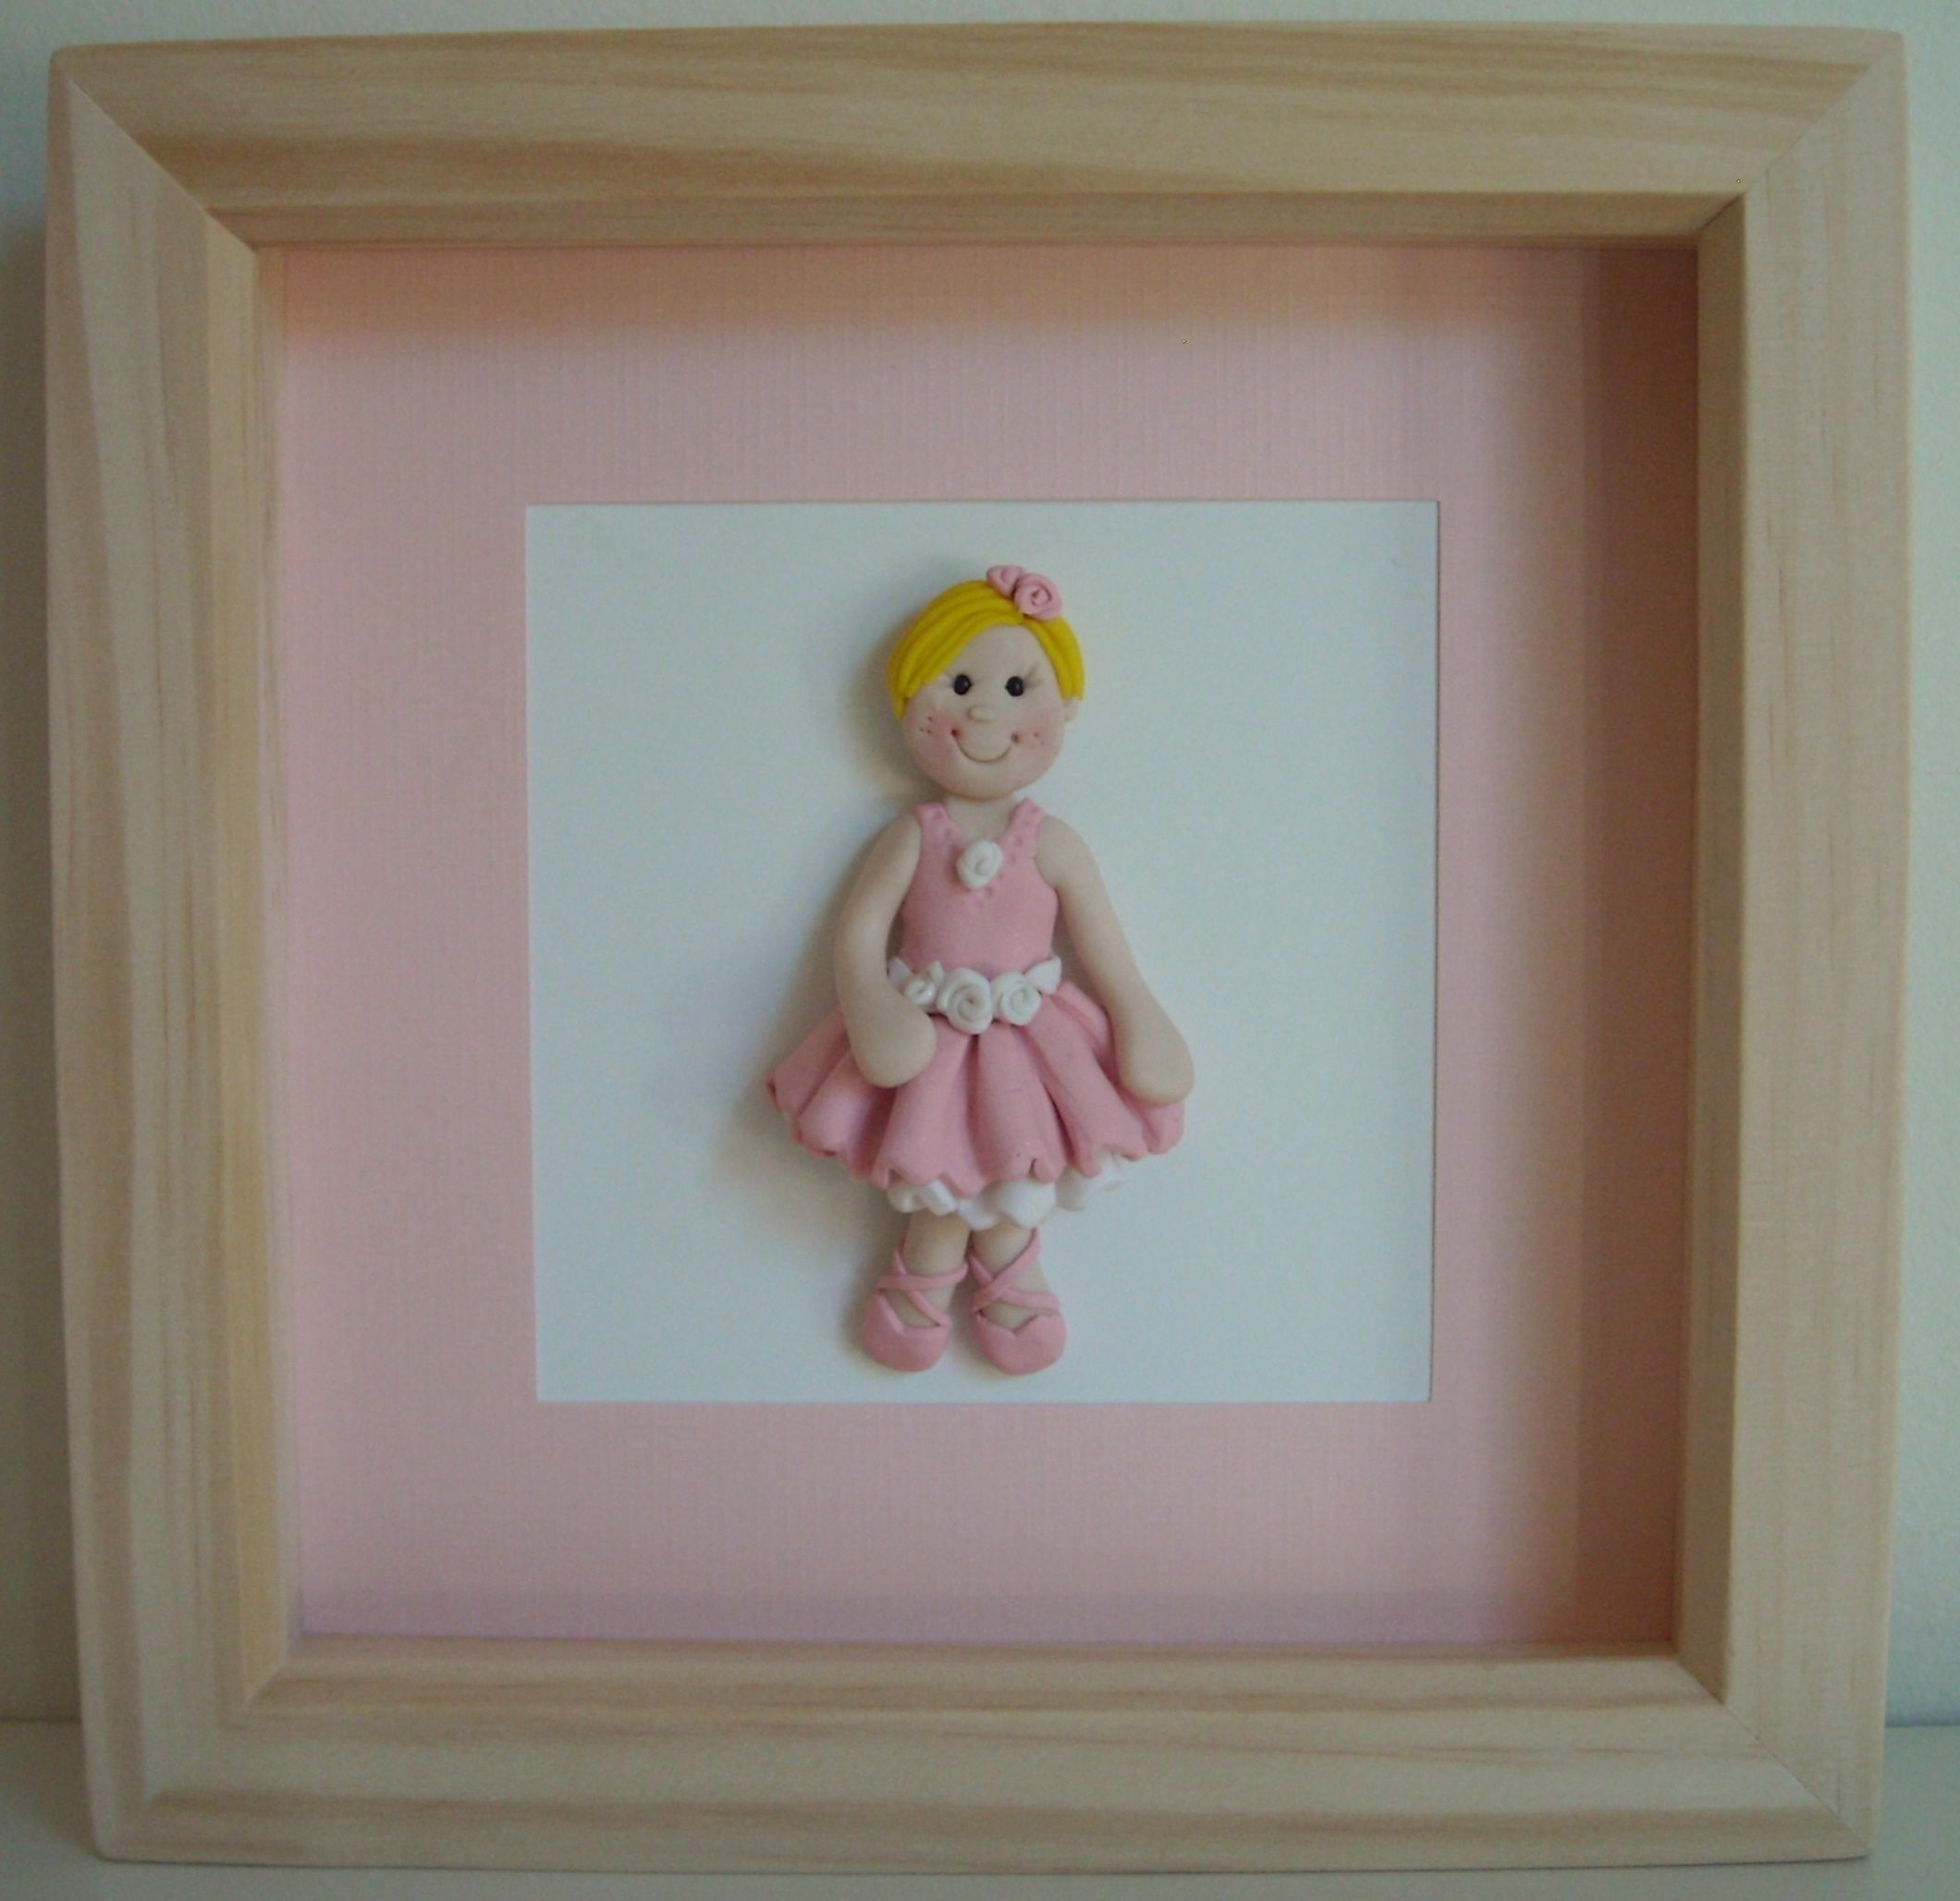 Fimo 3d ballerina in a box picture frame fimo pinterest fimo 3d ballerina in a box picture frame jeuxipadfo Image collections